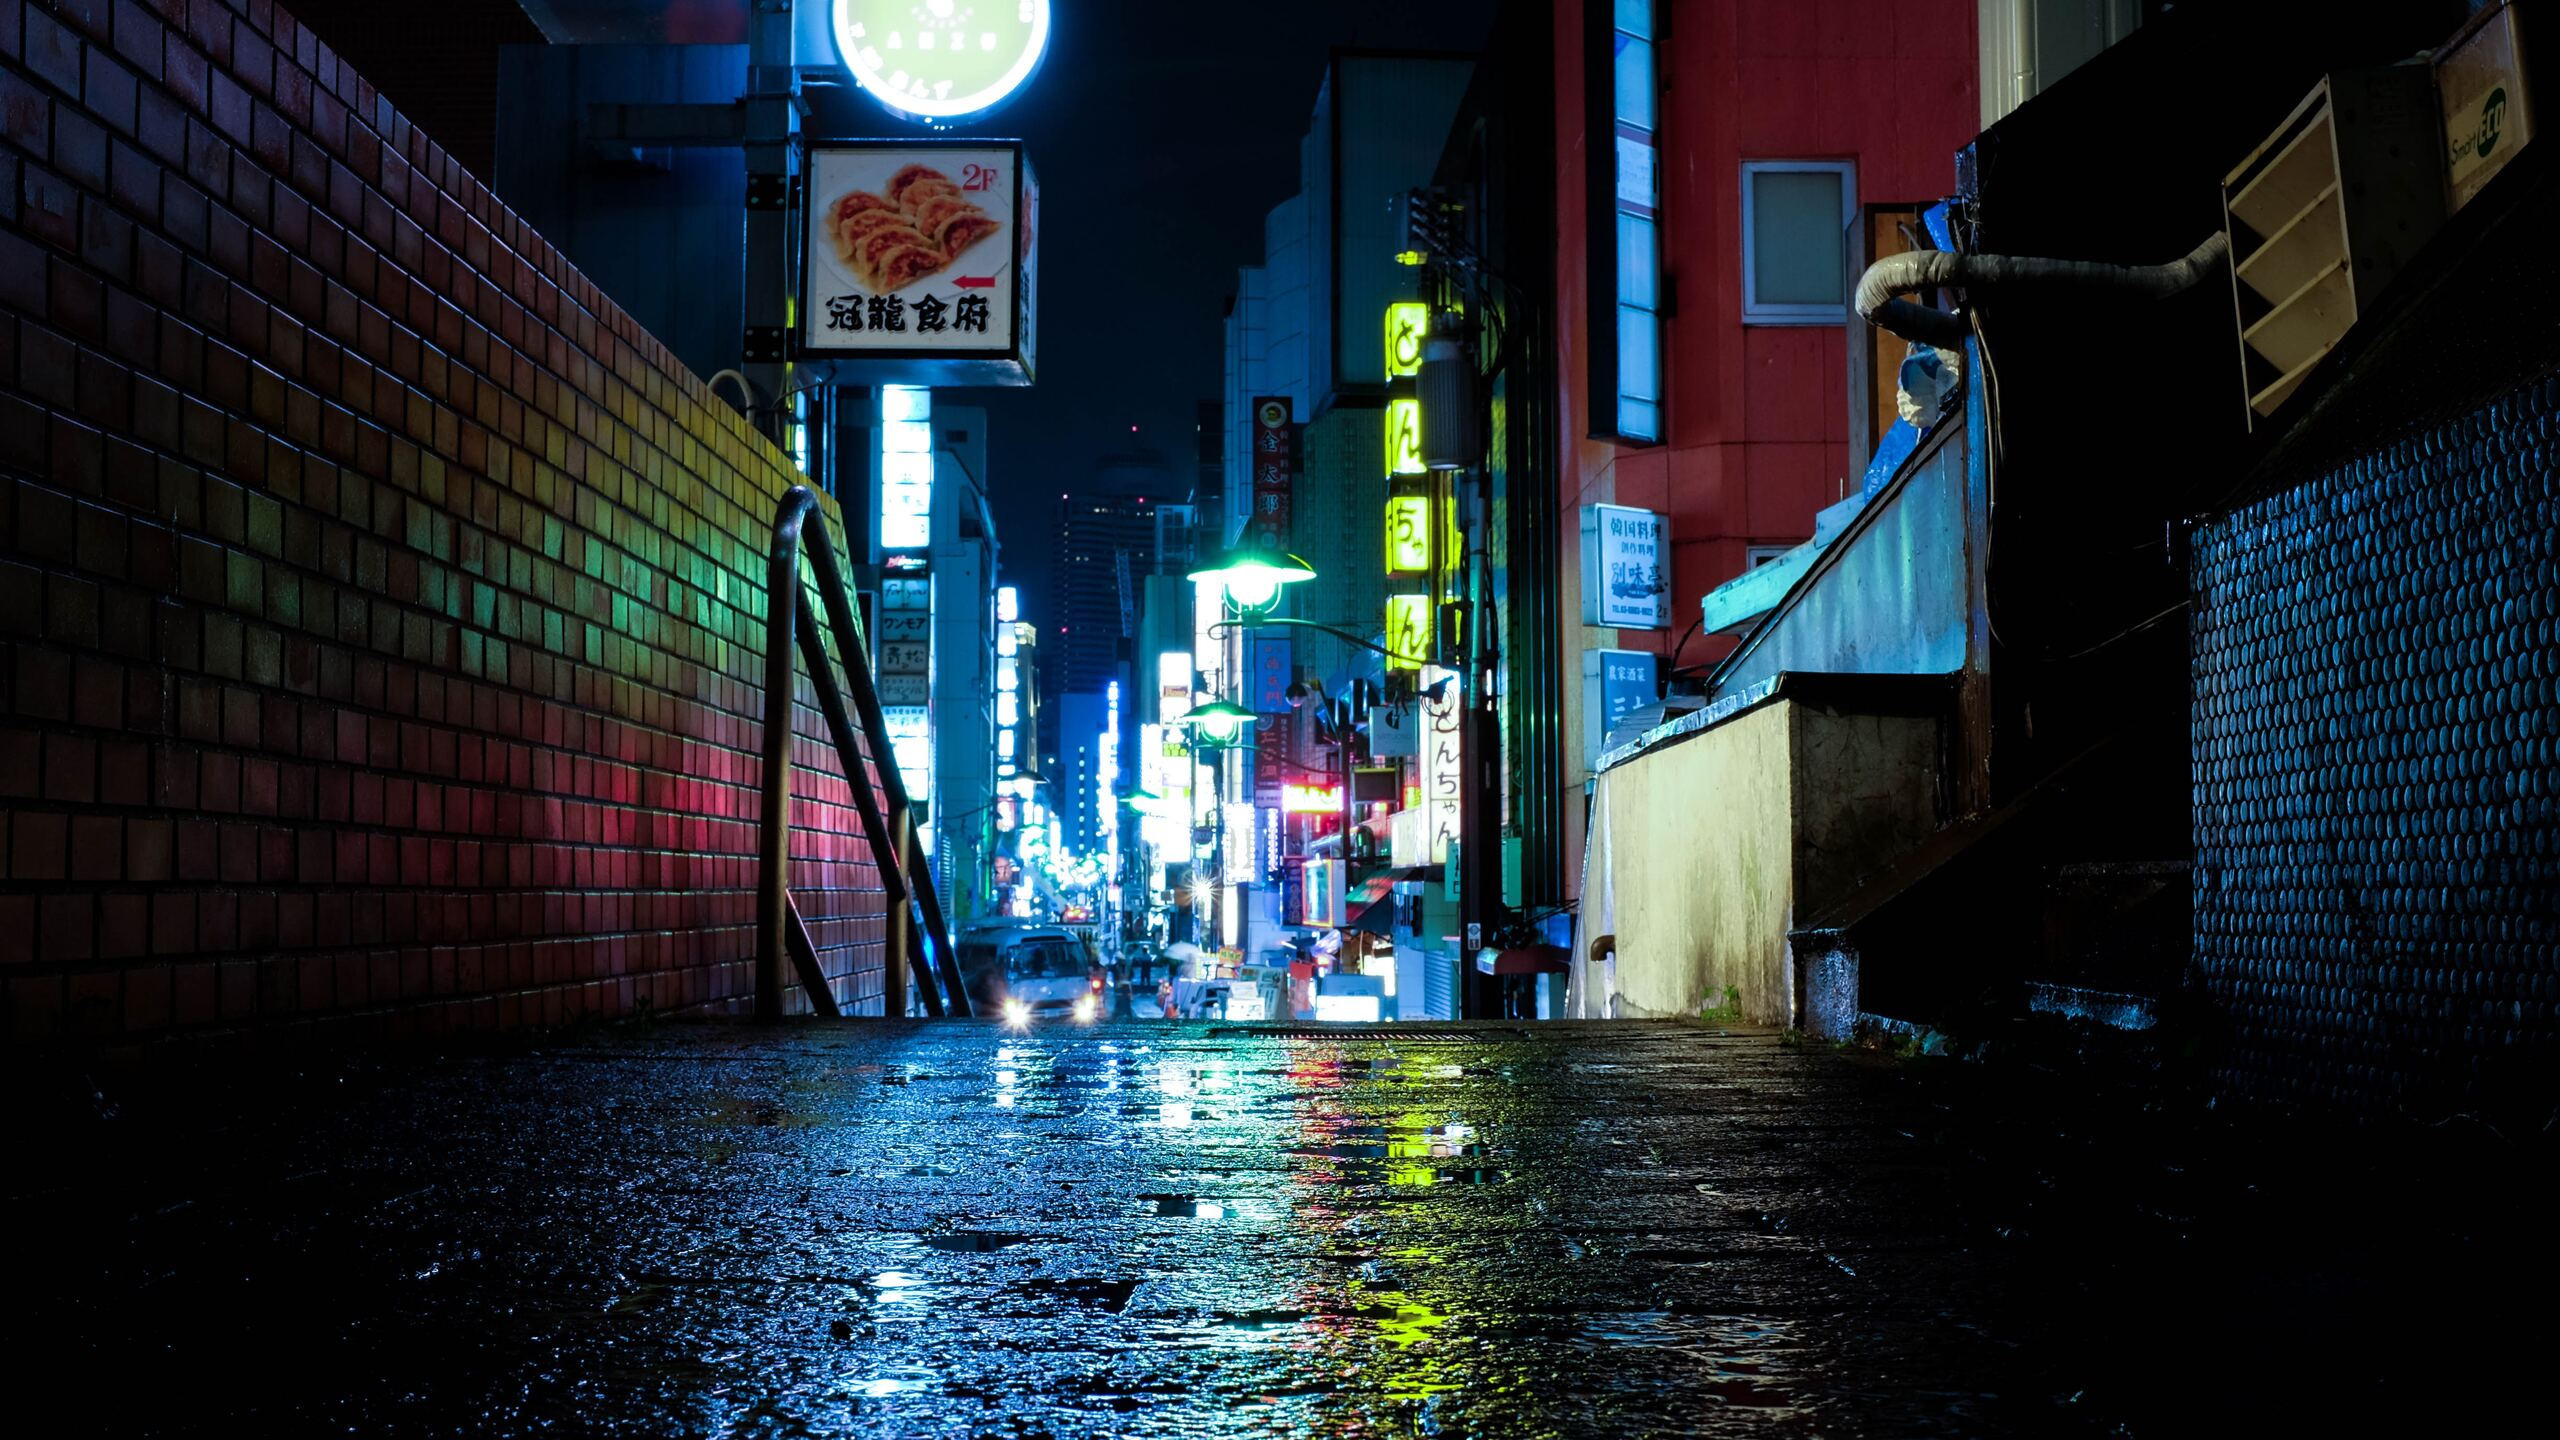 2560x1440 Japan Tokyo Urban Lights Neon 5k 1440p Resolution Hd 4k Wallpapers Images Backgrounds Photos And Pictures